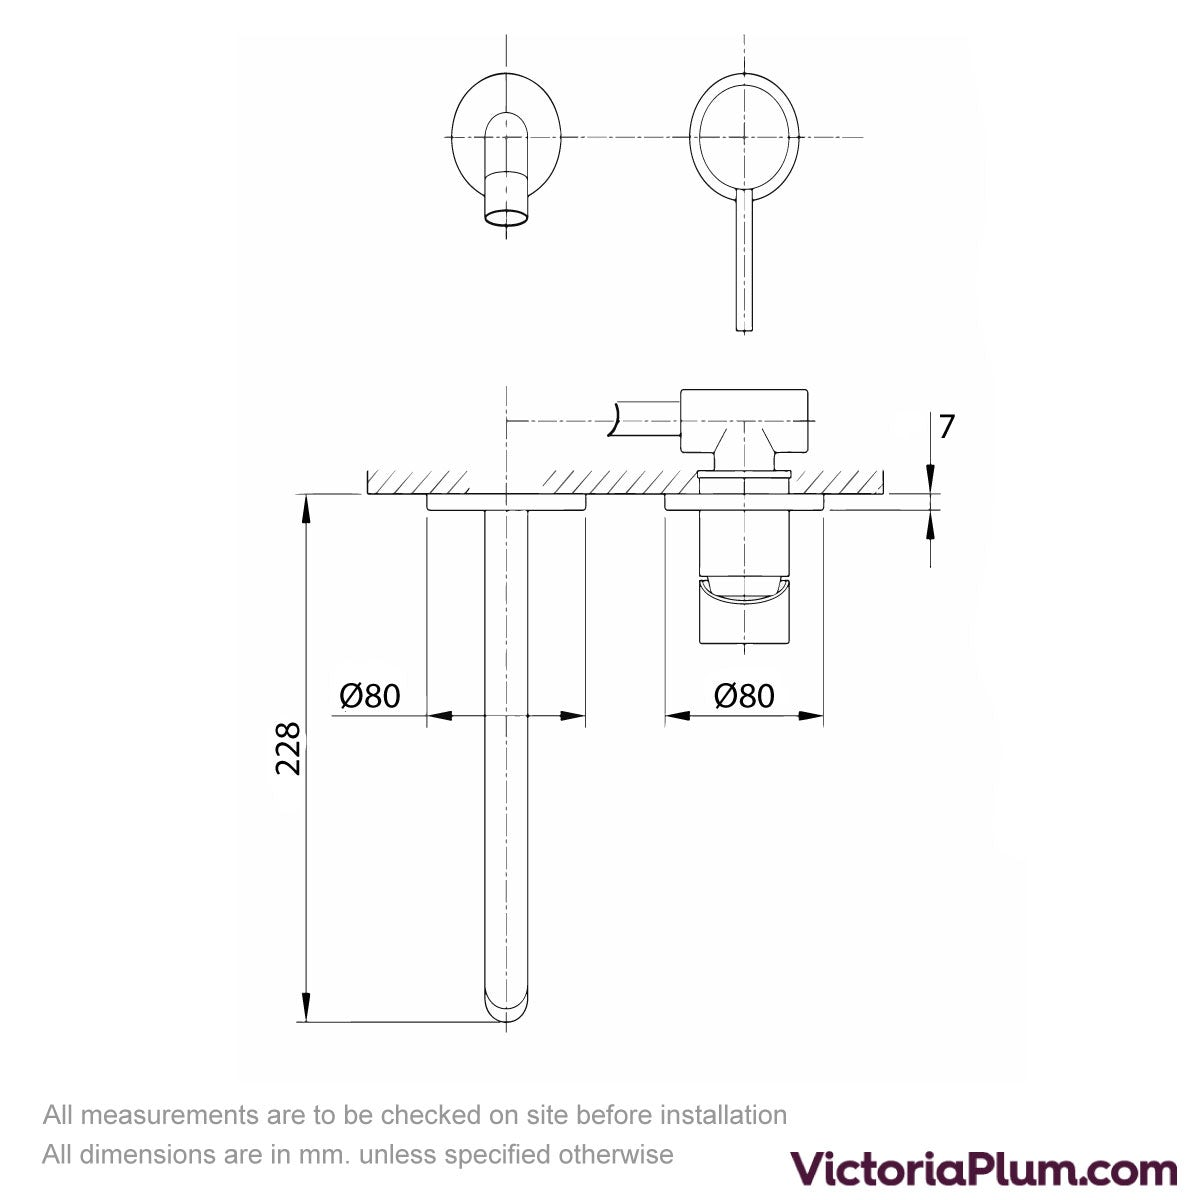 Dimensions for Mode Spencer round wall mounted bath mixer tap